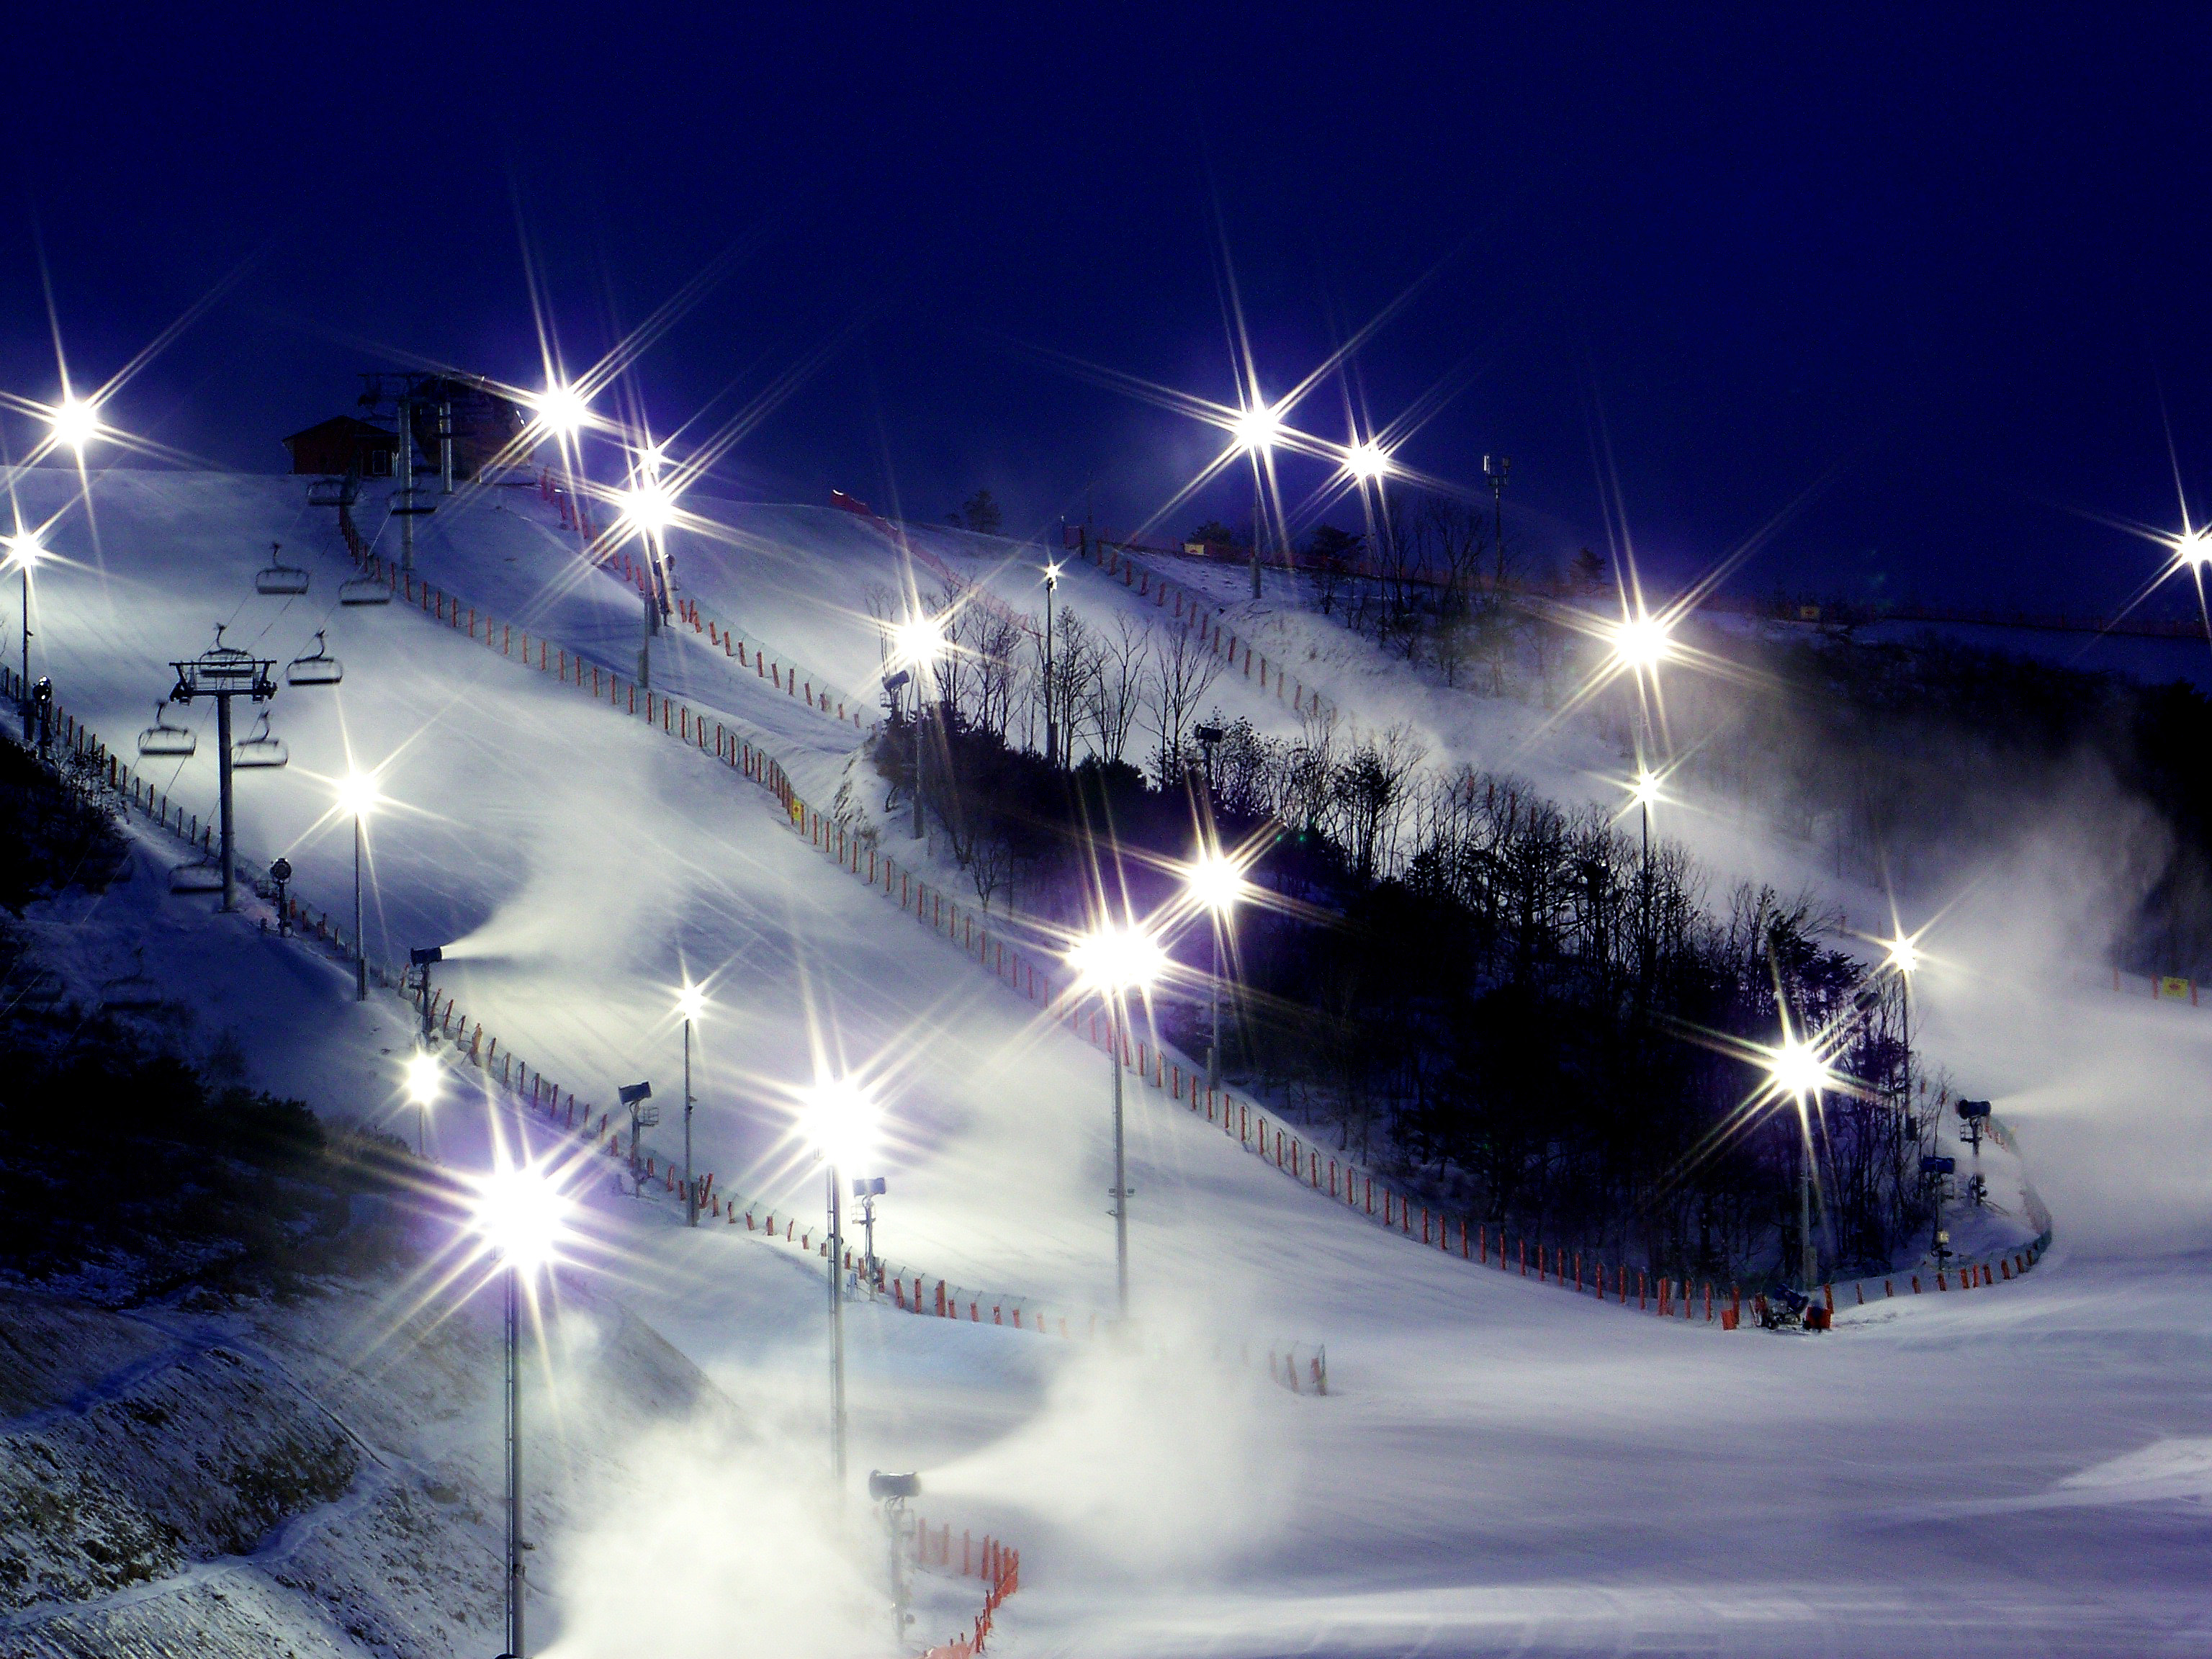 (Winter) Eden Valley Ski Resort Night Ski Tour - Depart from Busan